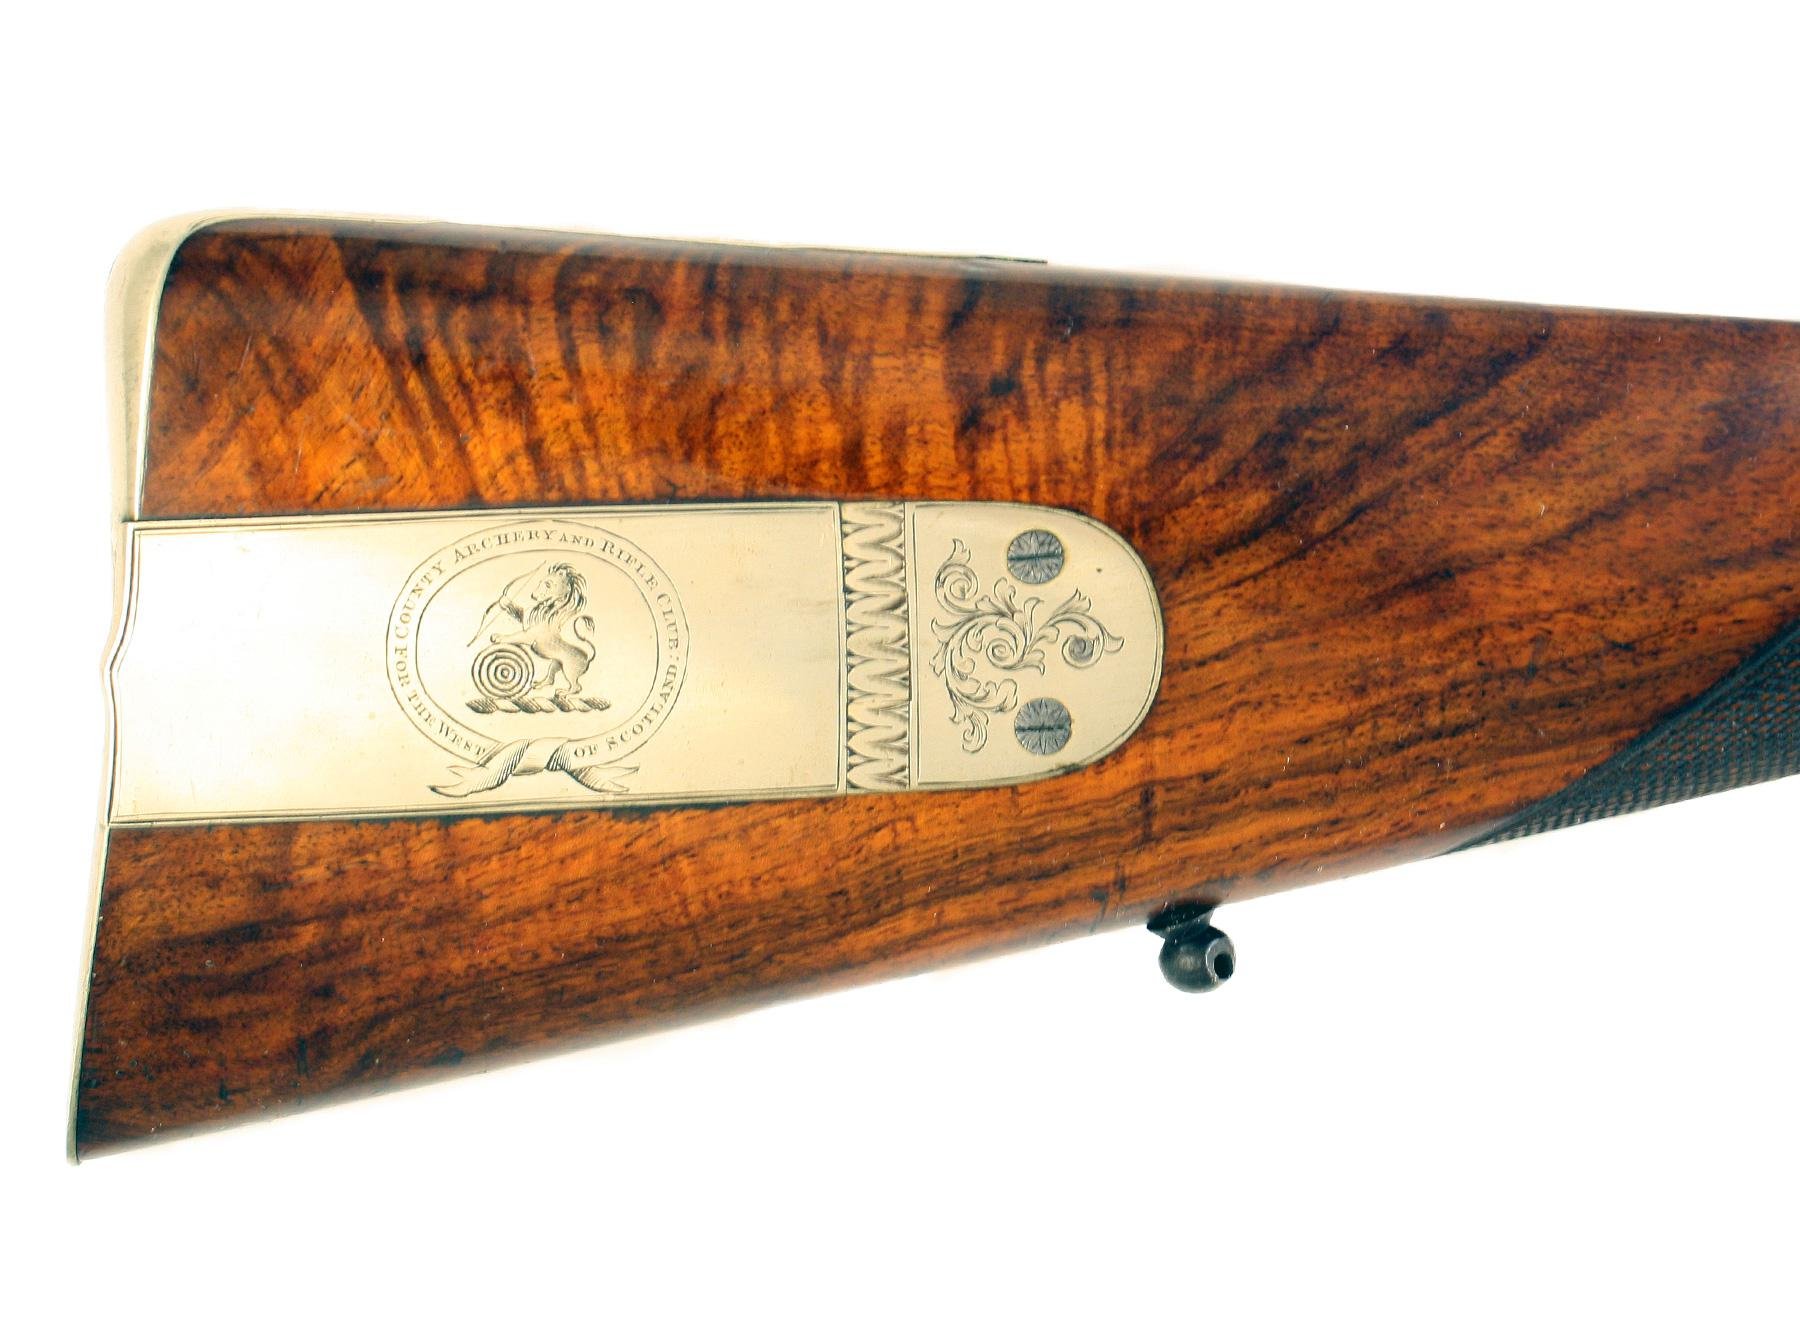 A Cased Presentation Rifle by Mortimer